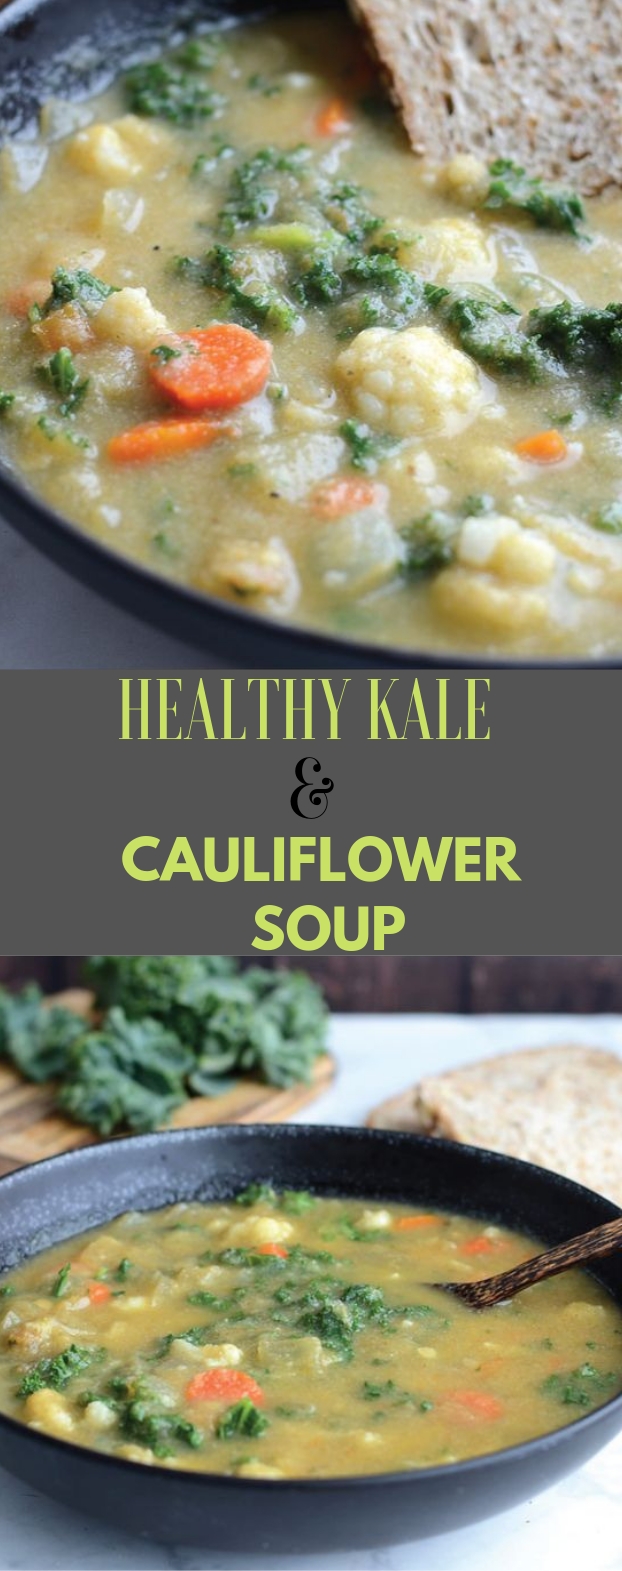 HEALTHY KALE AND CAULIFLOWER SOUP #soup #cauliflower